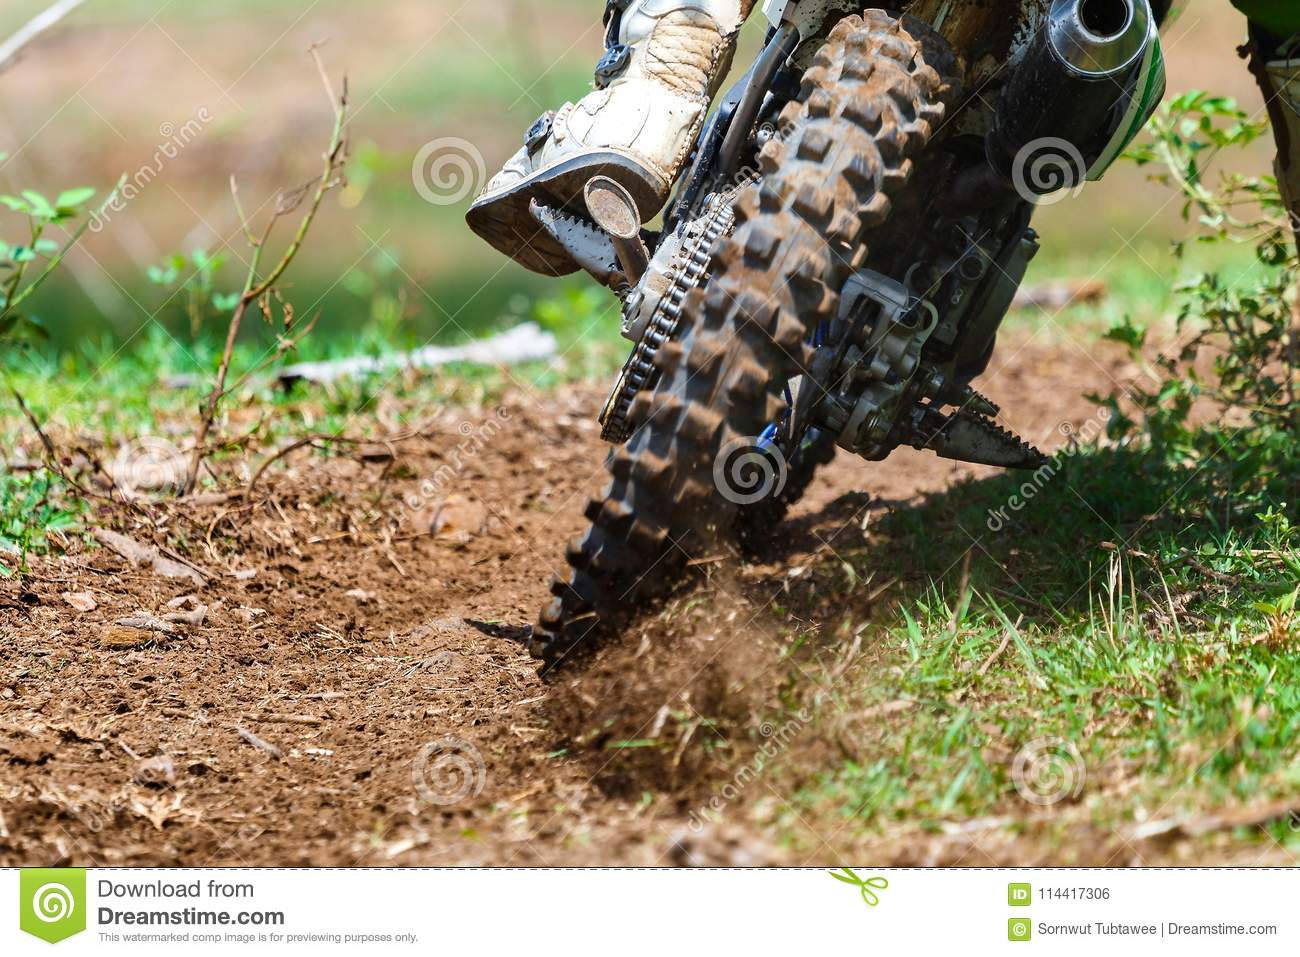 Enduro,motocross in the mud,Details of flying debris during an acceleration